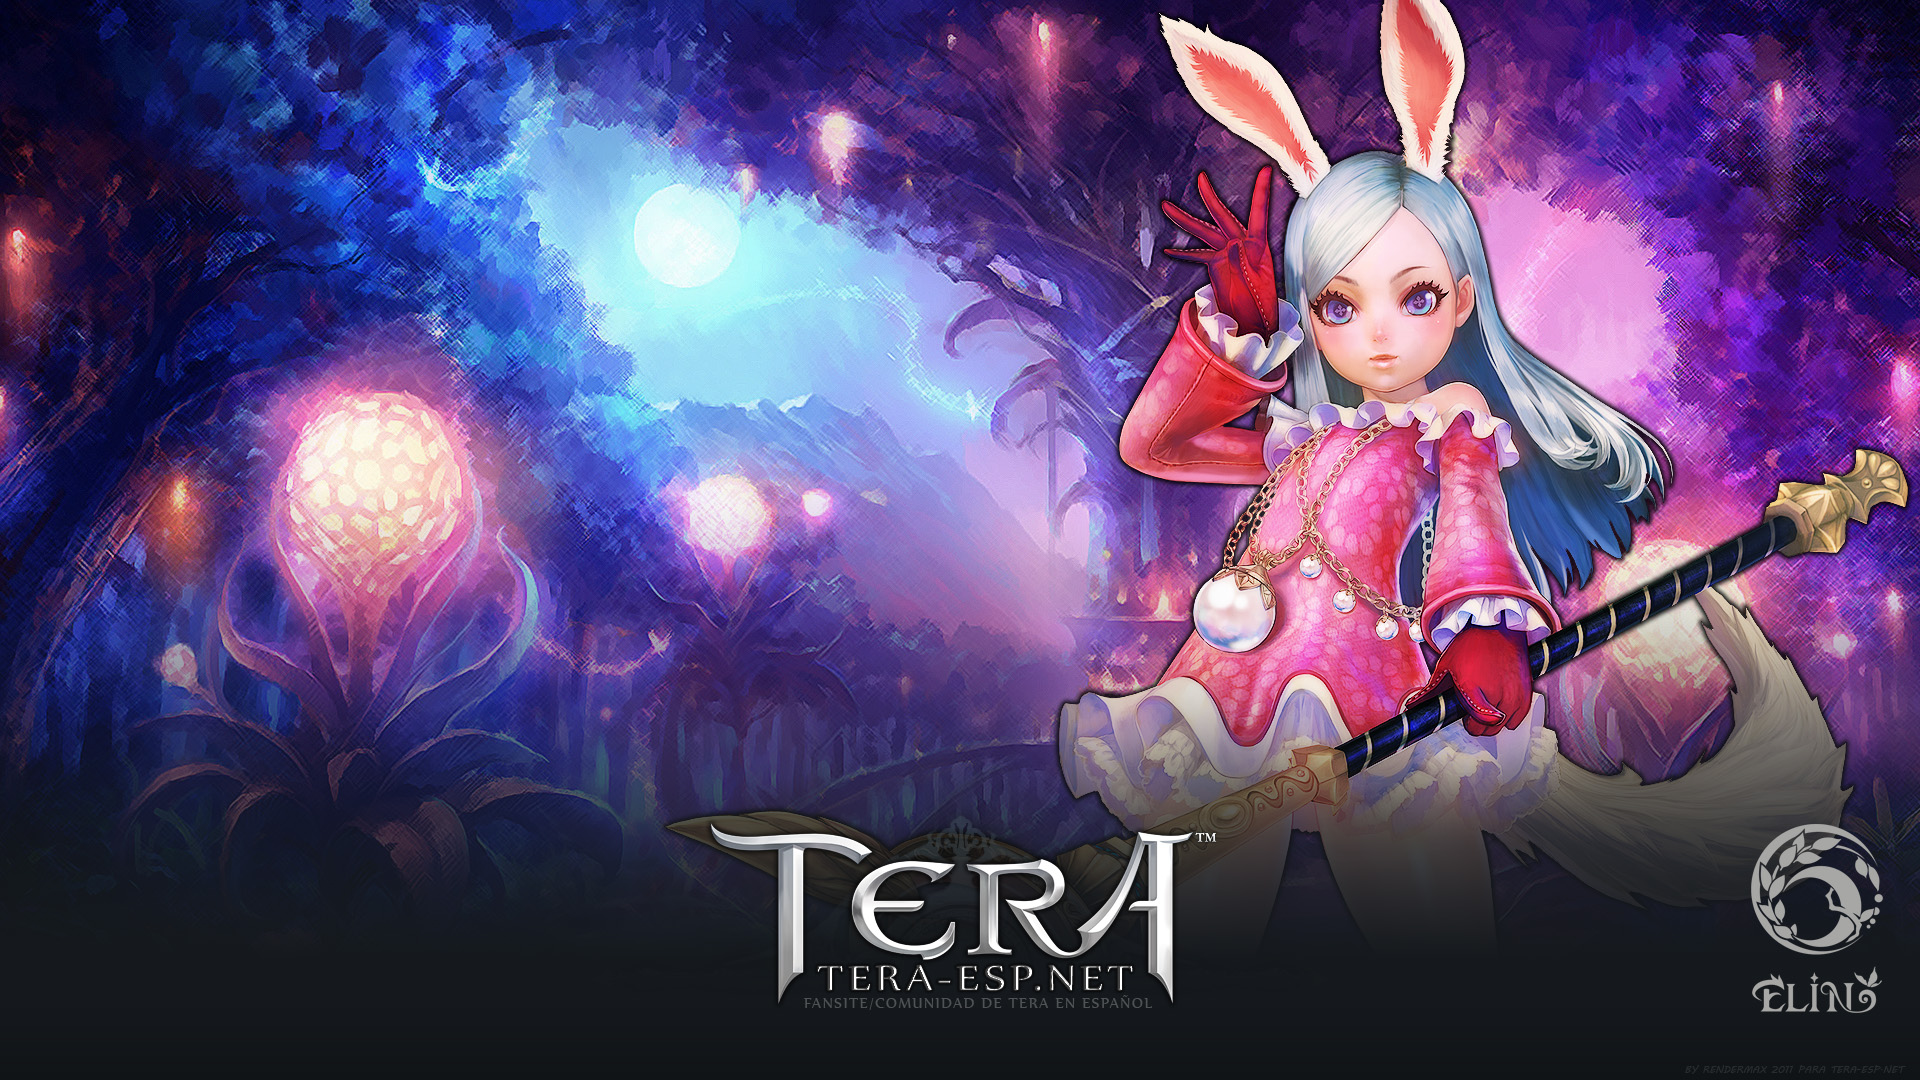 New Video for TERA Released Showcasing the Elin Race | RaGEZONE